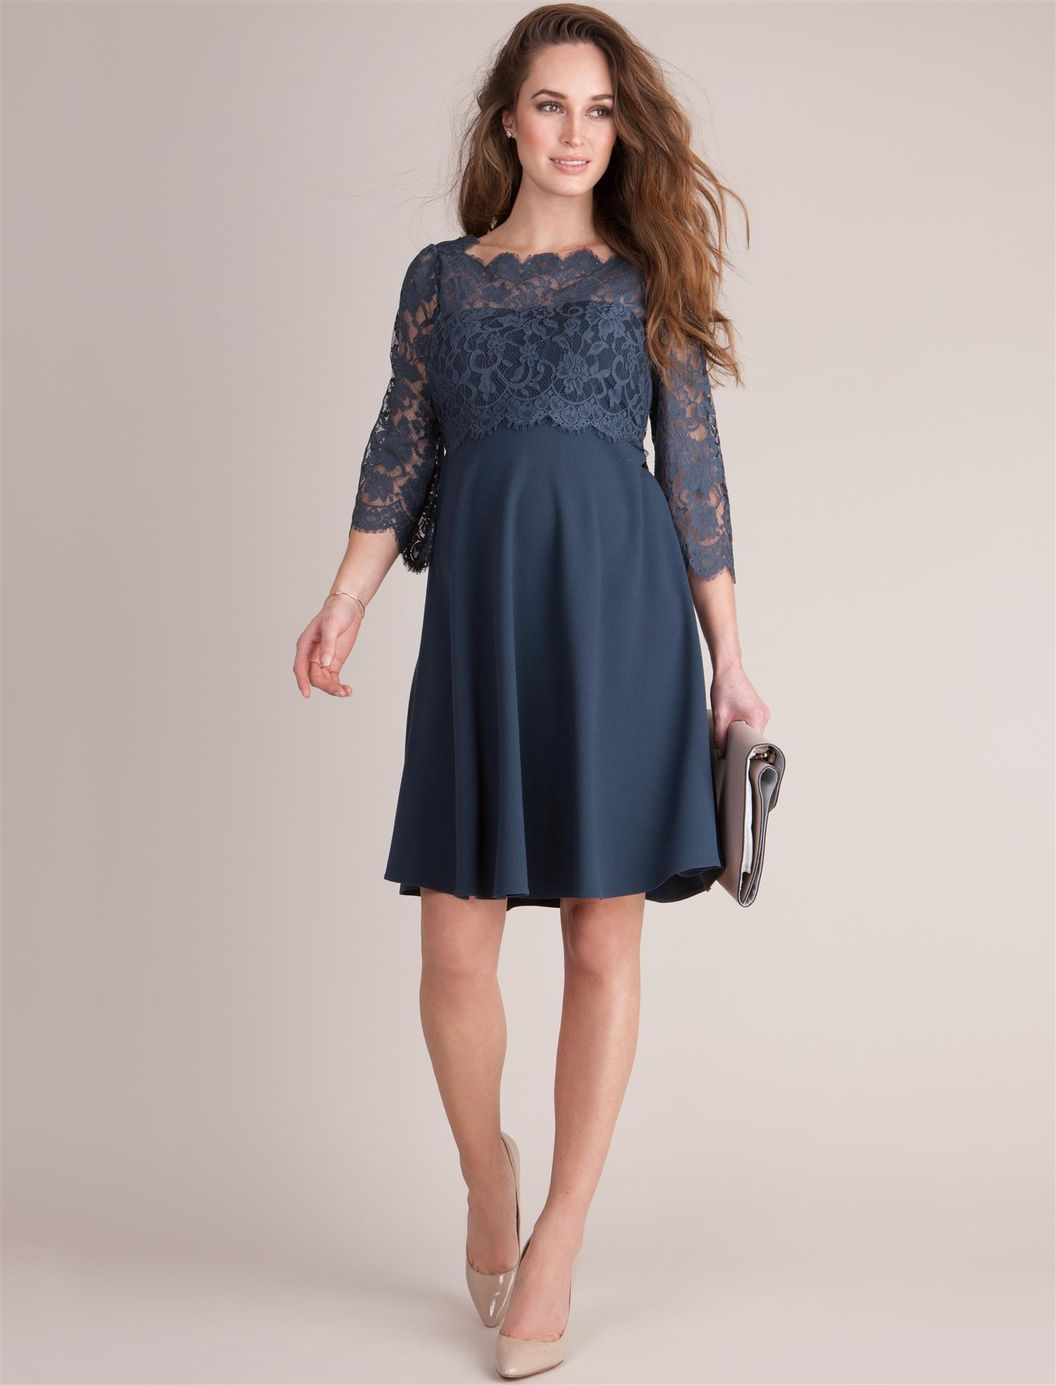 Web only seraphine babydoll maternity dress a pea in the pod feel glamorous throughout pregnancy afterwards with seraphines teal blue lace top maternity dress perfect for special occasions ombrellifo Choice Image